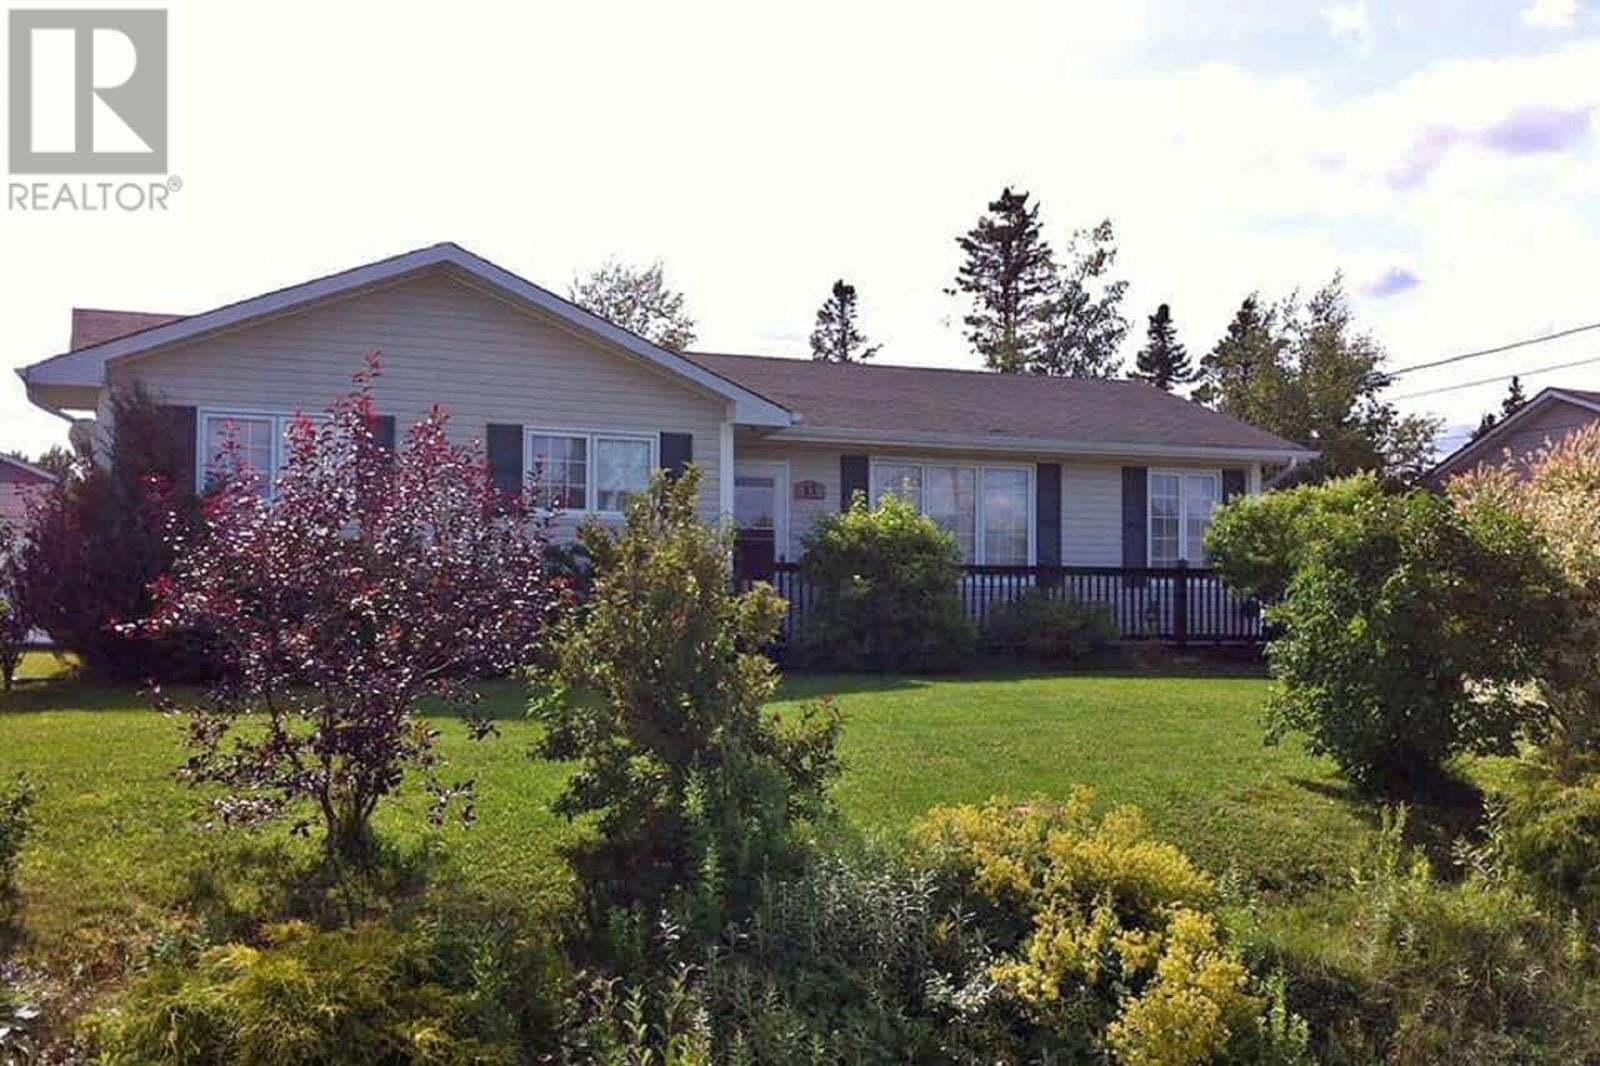 House for sale at 17 Clearview Cres Glovertown Newfoundland - MLS: 1214129